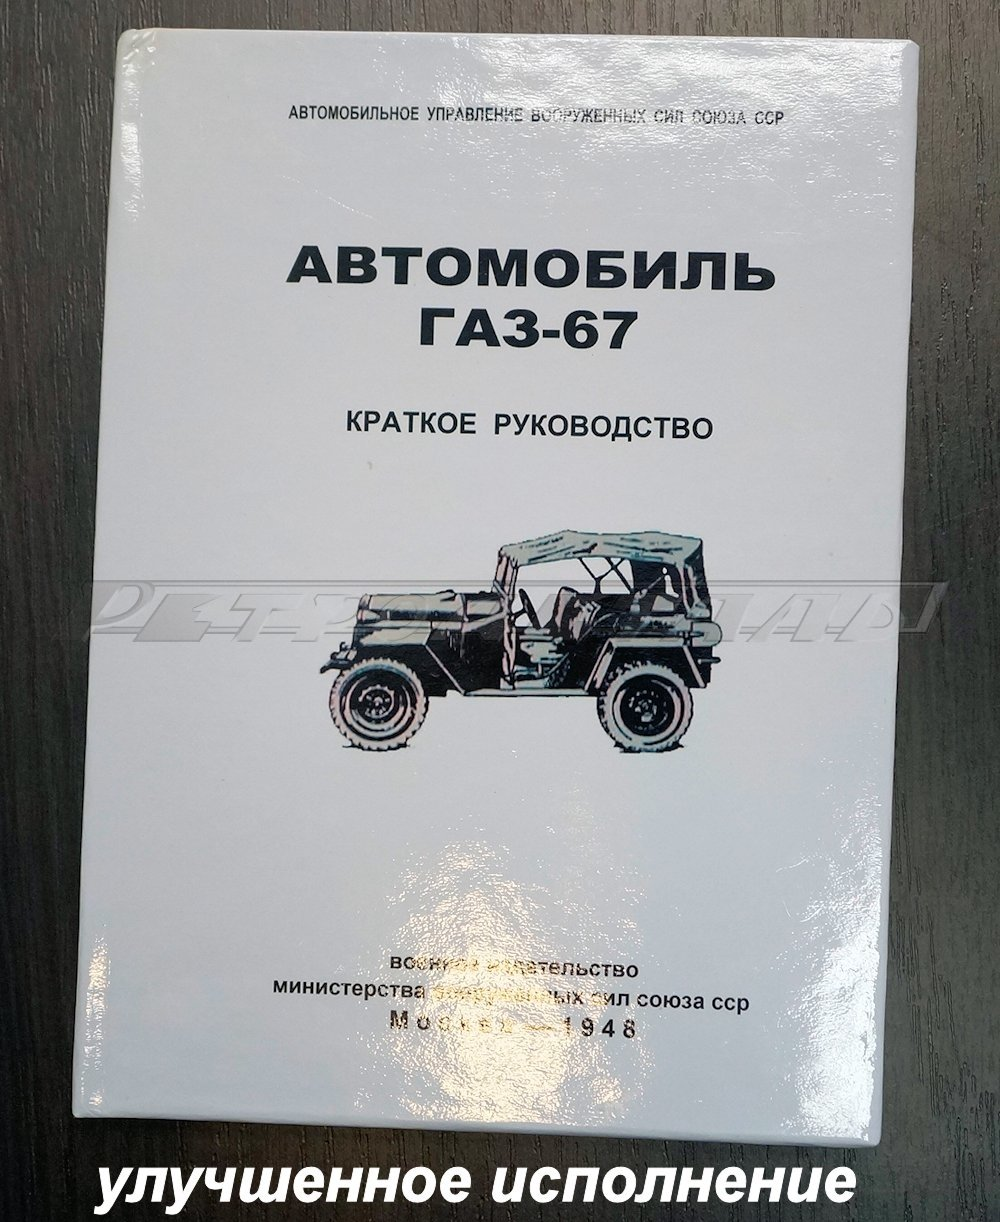 Factory instruction for GAZ-67 and GAZ-67B, 1948